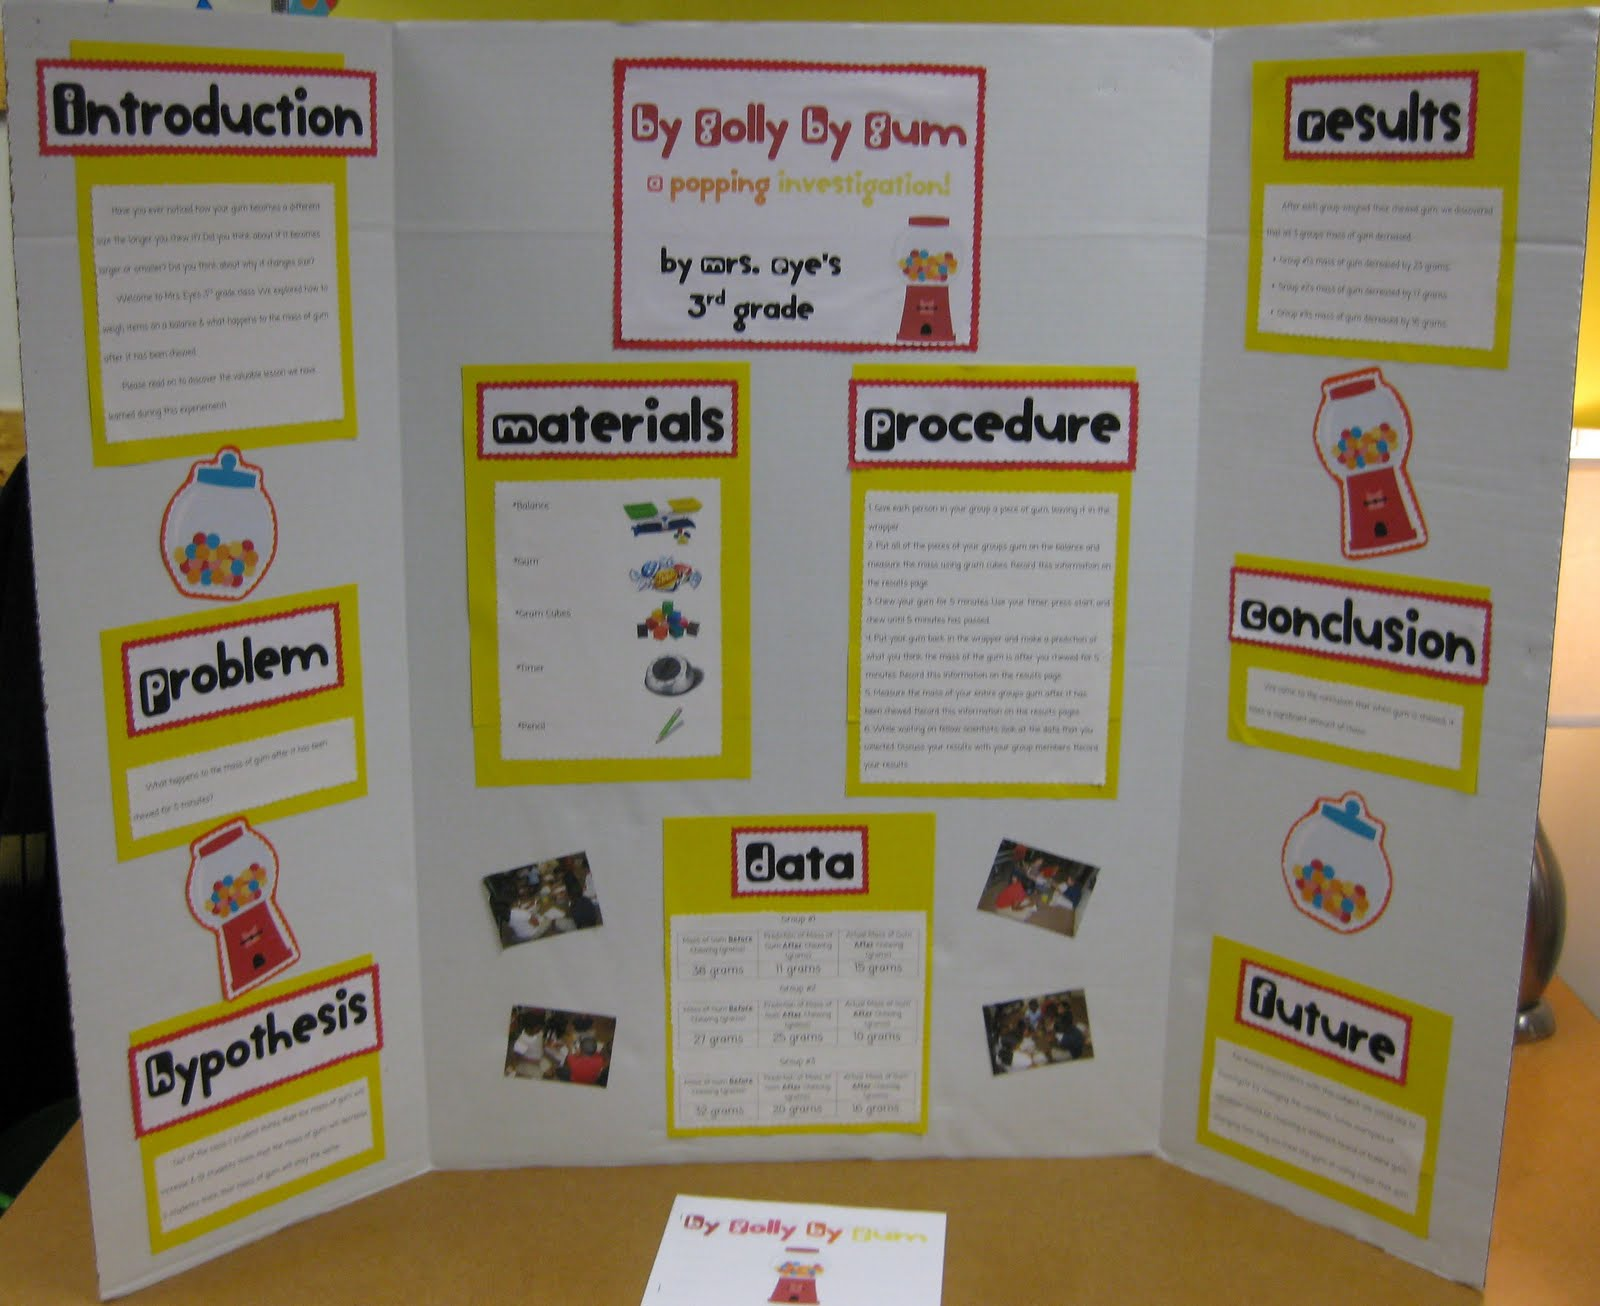 3rd grade science fair project